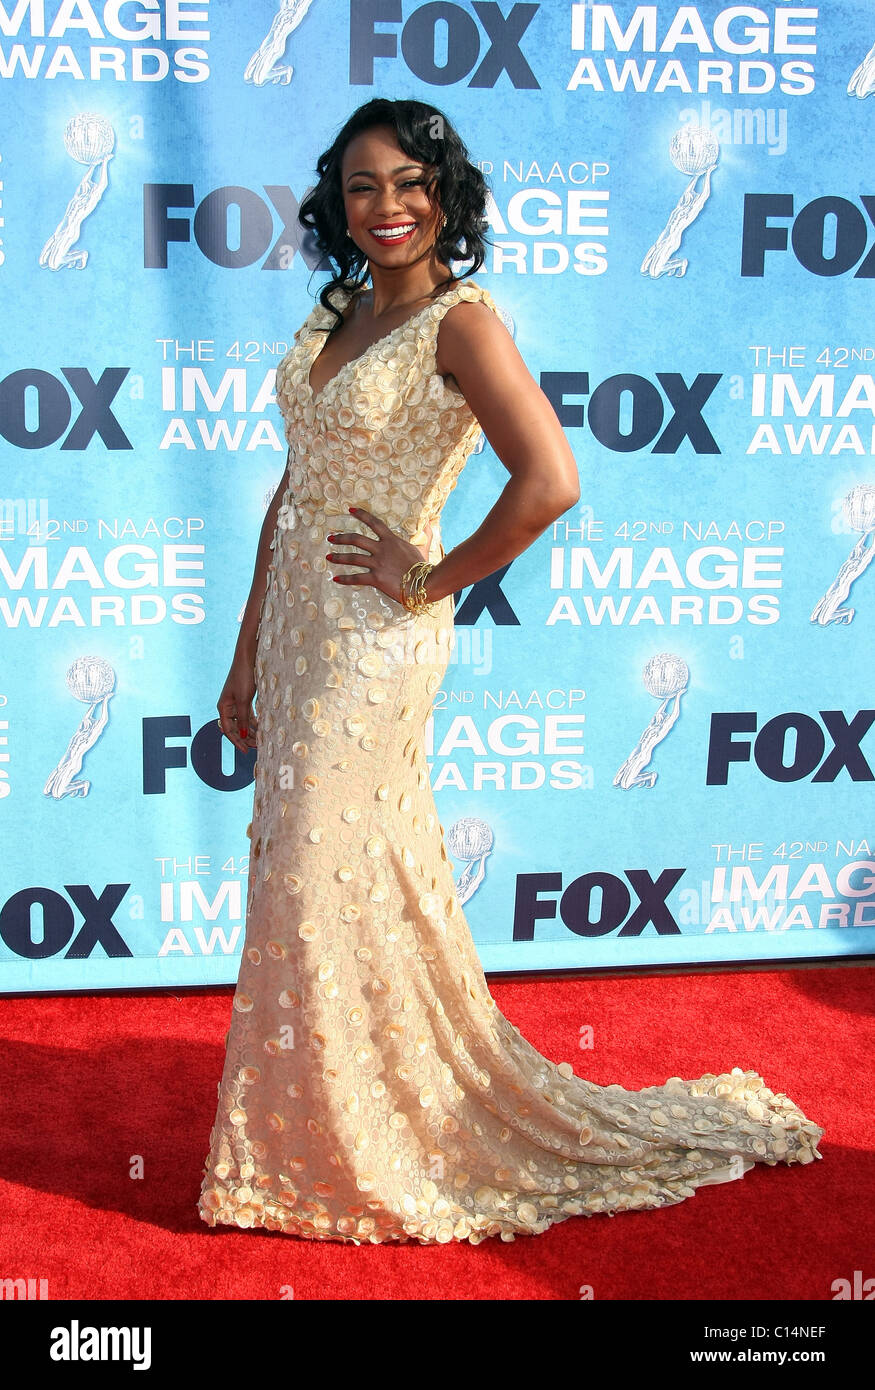 TATYANA ALI 42ND NAACP IMAGE AWARDS ARRIVALS DOWNTOWN LOS ANGELES CALIFORNIA USA 04 March 2011 - Stock Image